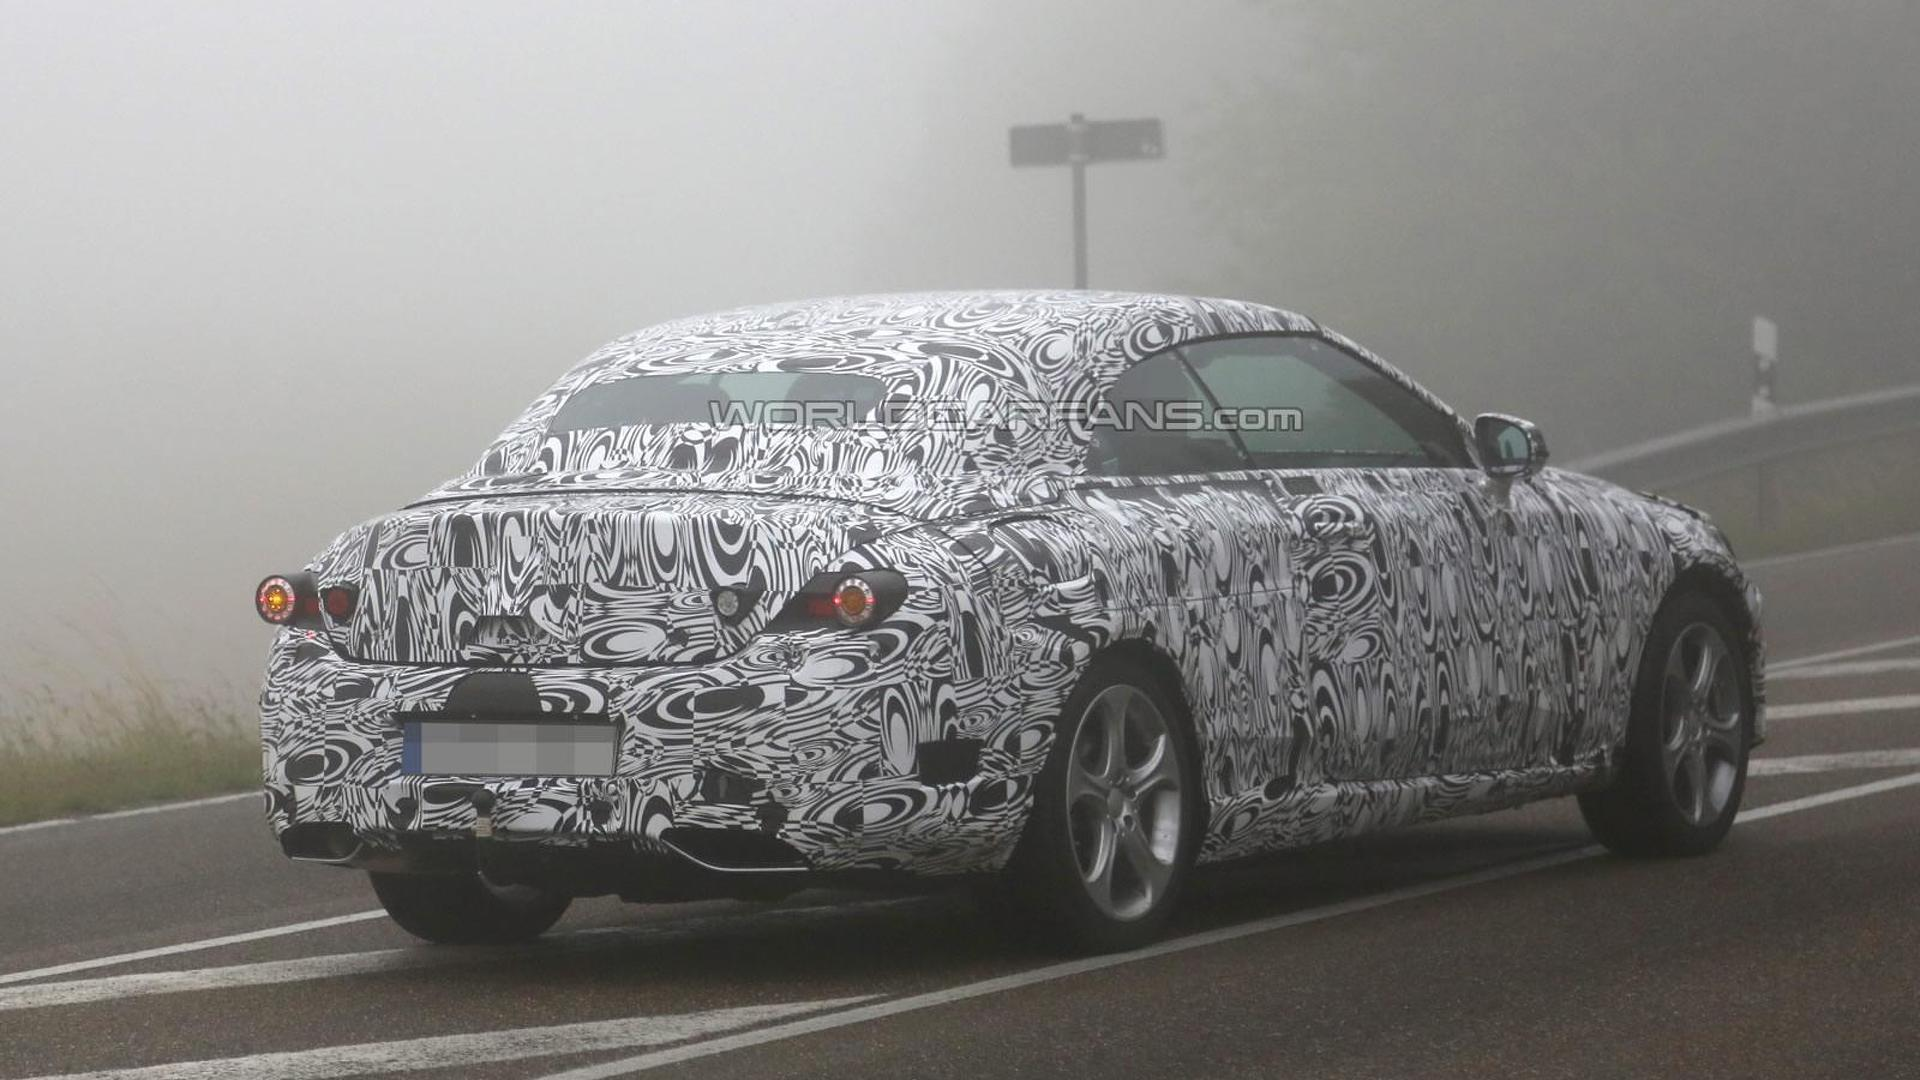 Mercedes-Benz C-Class Cabriolet spied on a foggy day